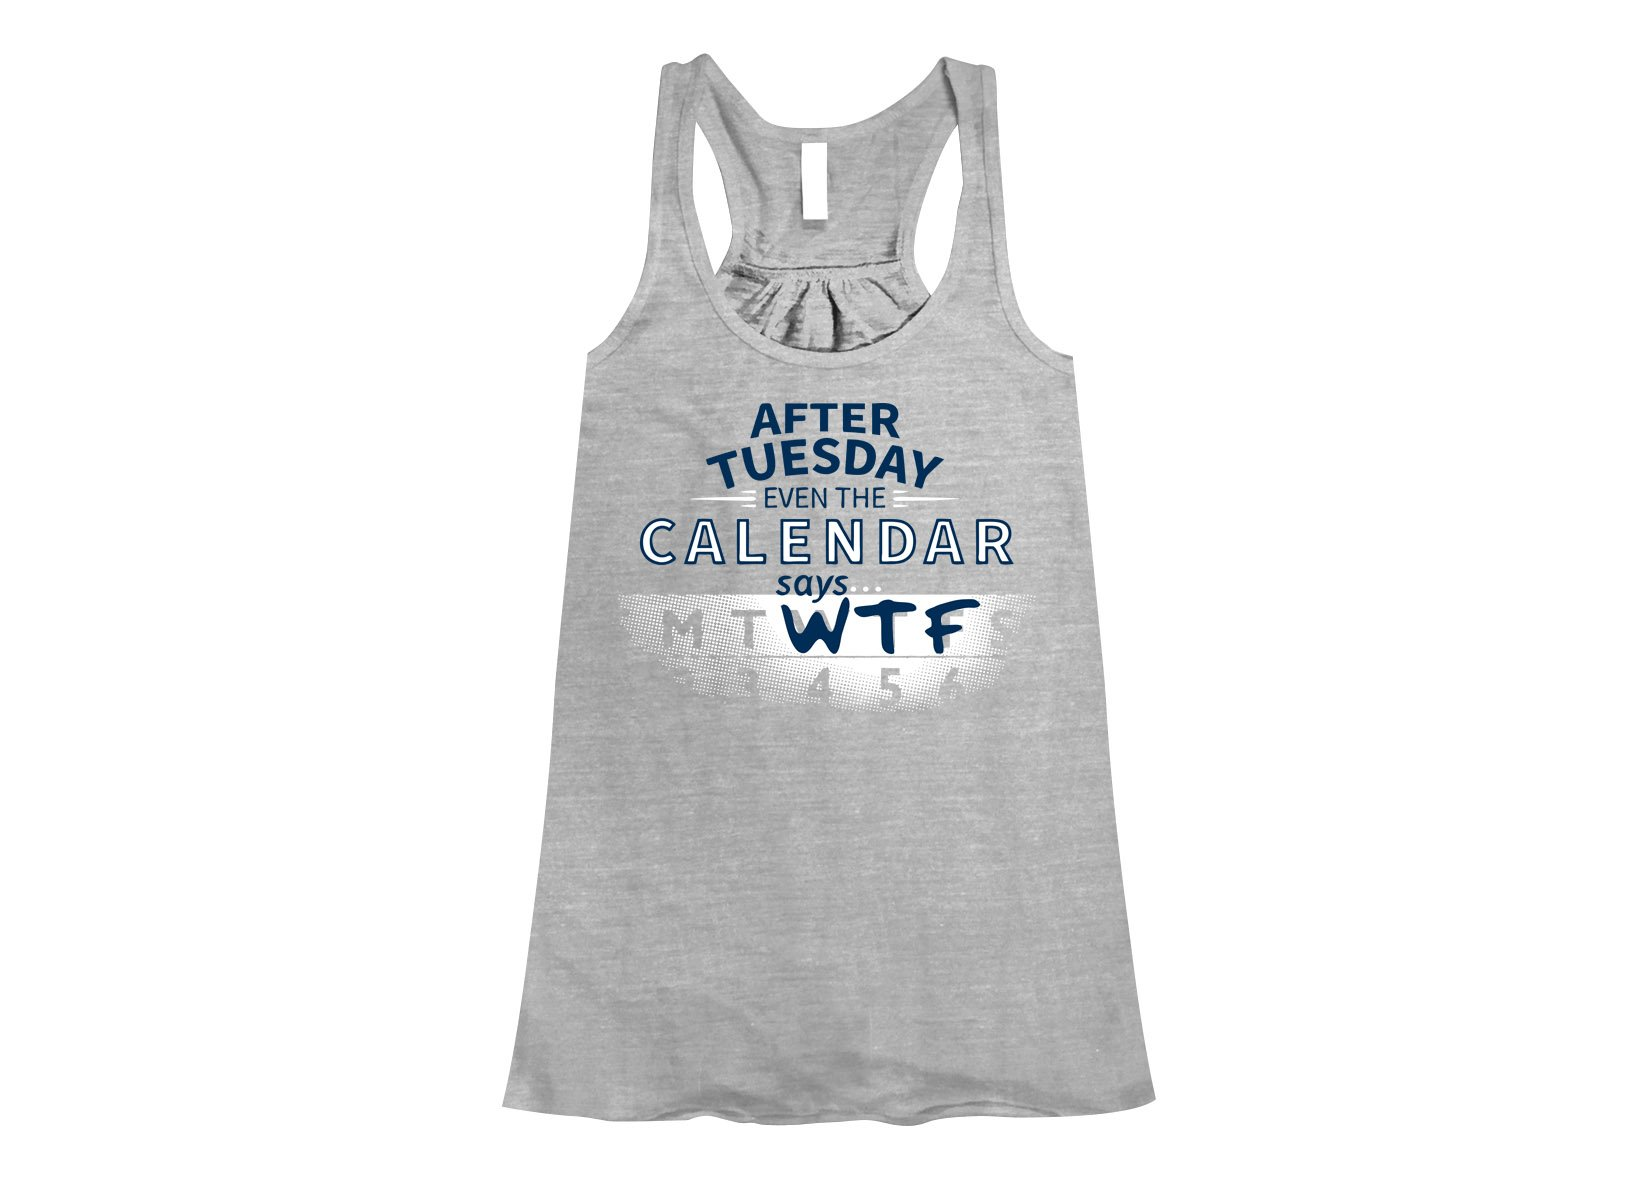 After Tuesday Even The Calendar Says WTF on Womens Tanks T-Shirt